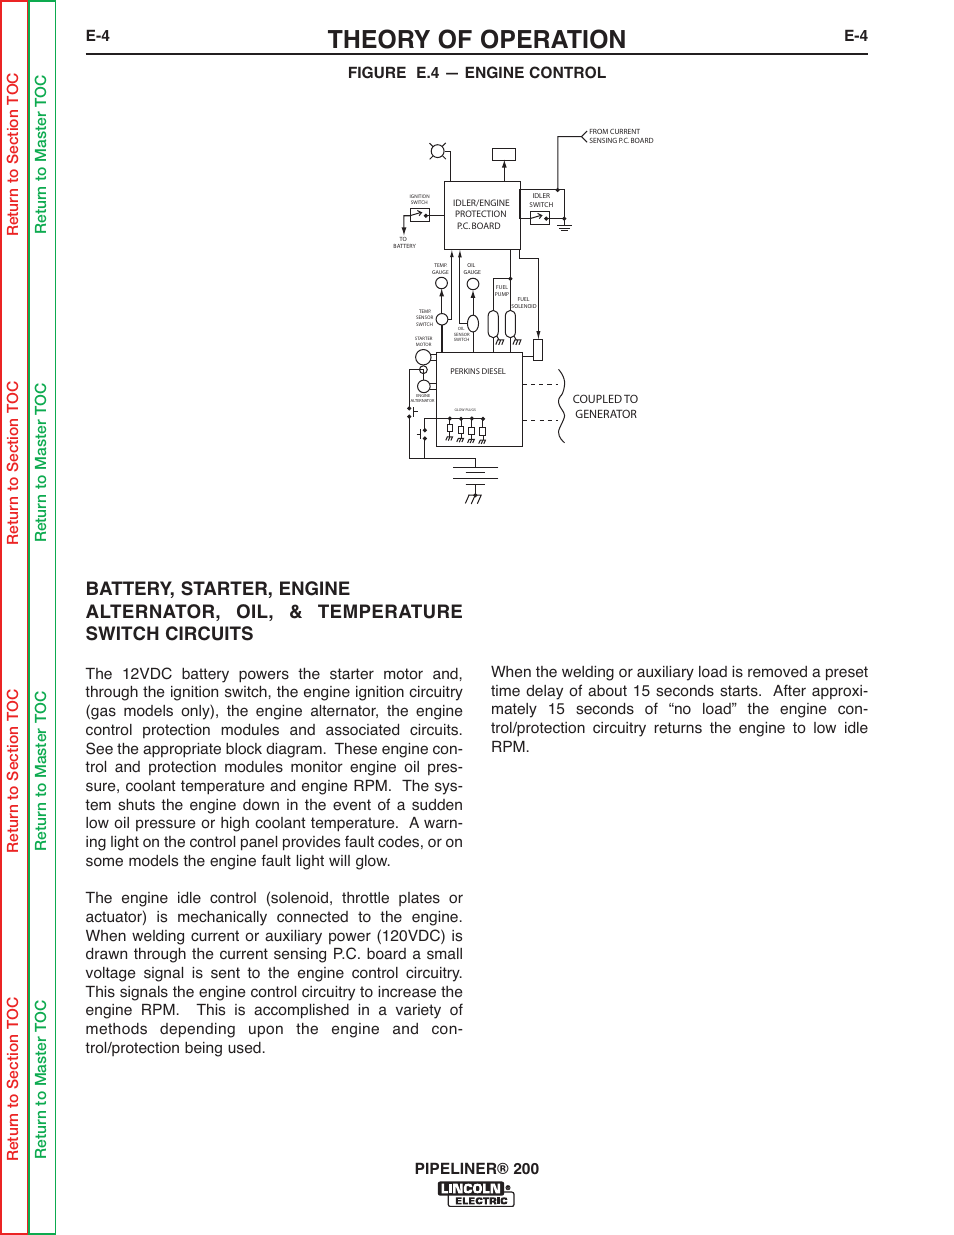 lincoln electric pipeliner 200 page66 theory of operation lincoln electric pipeliner 200 user manual